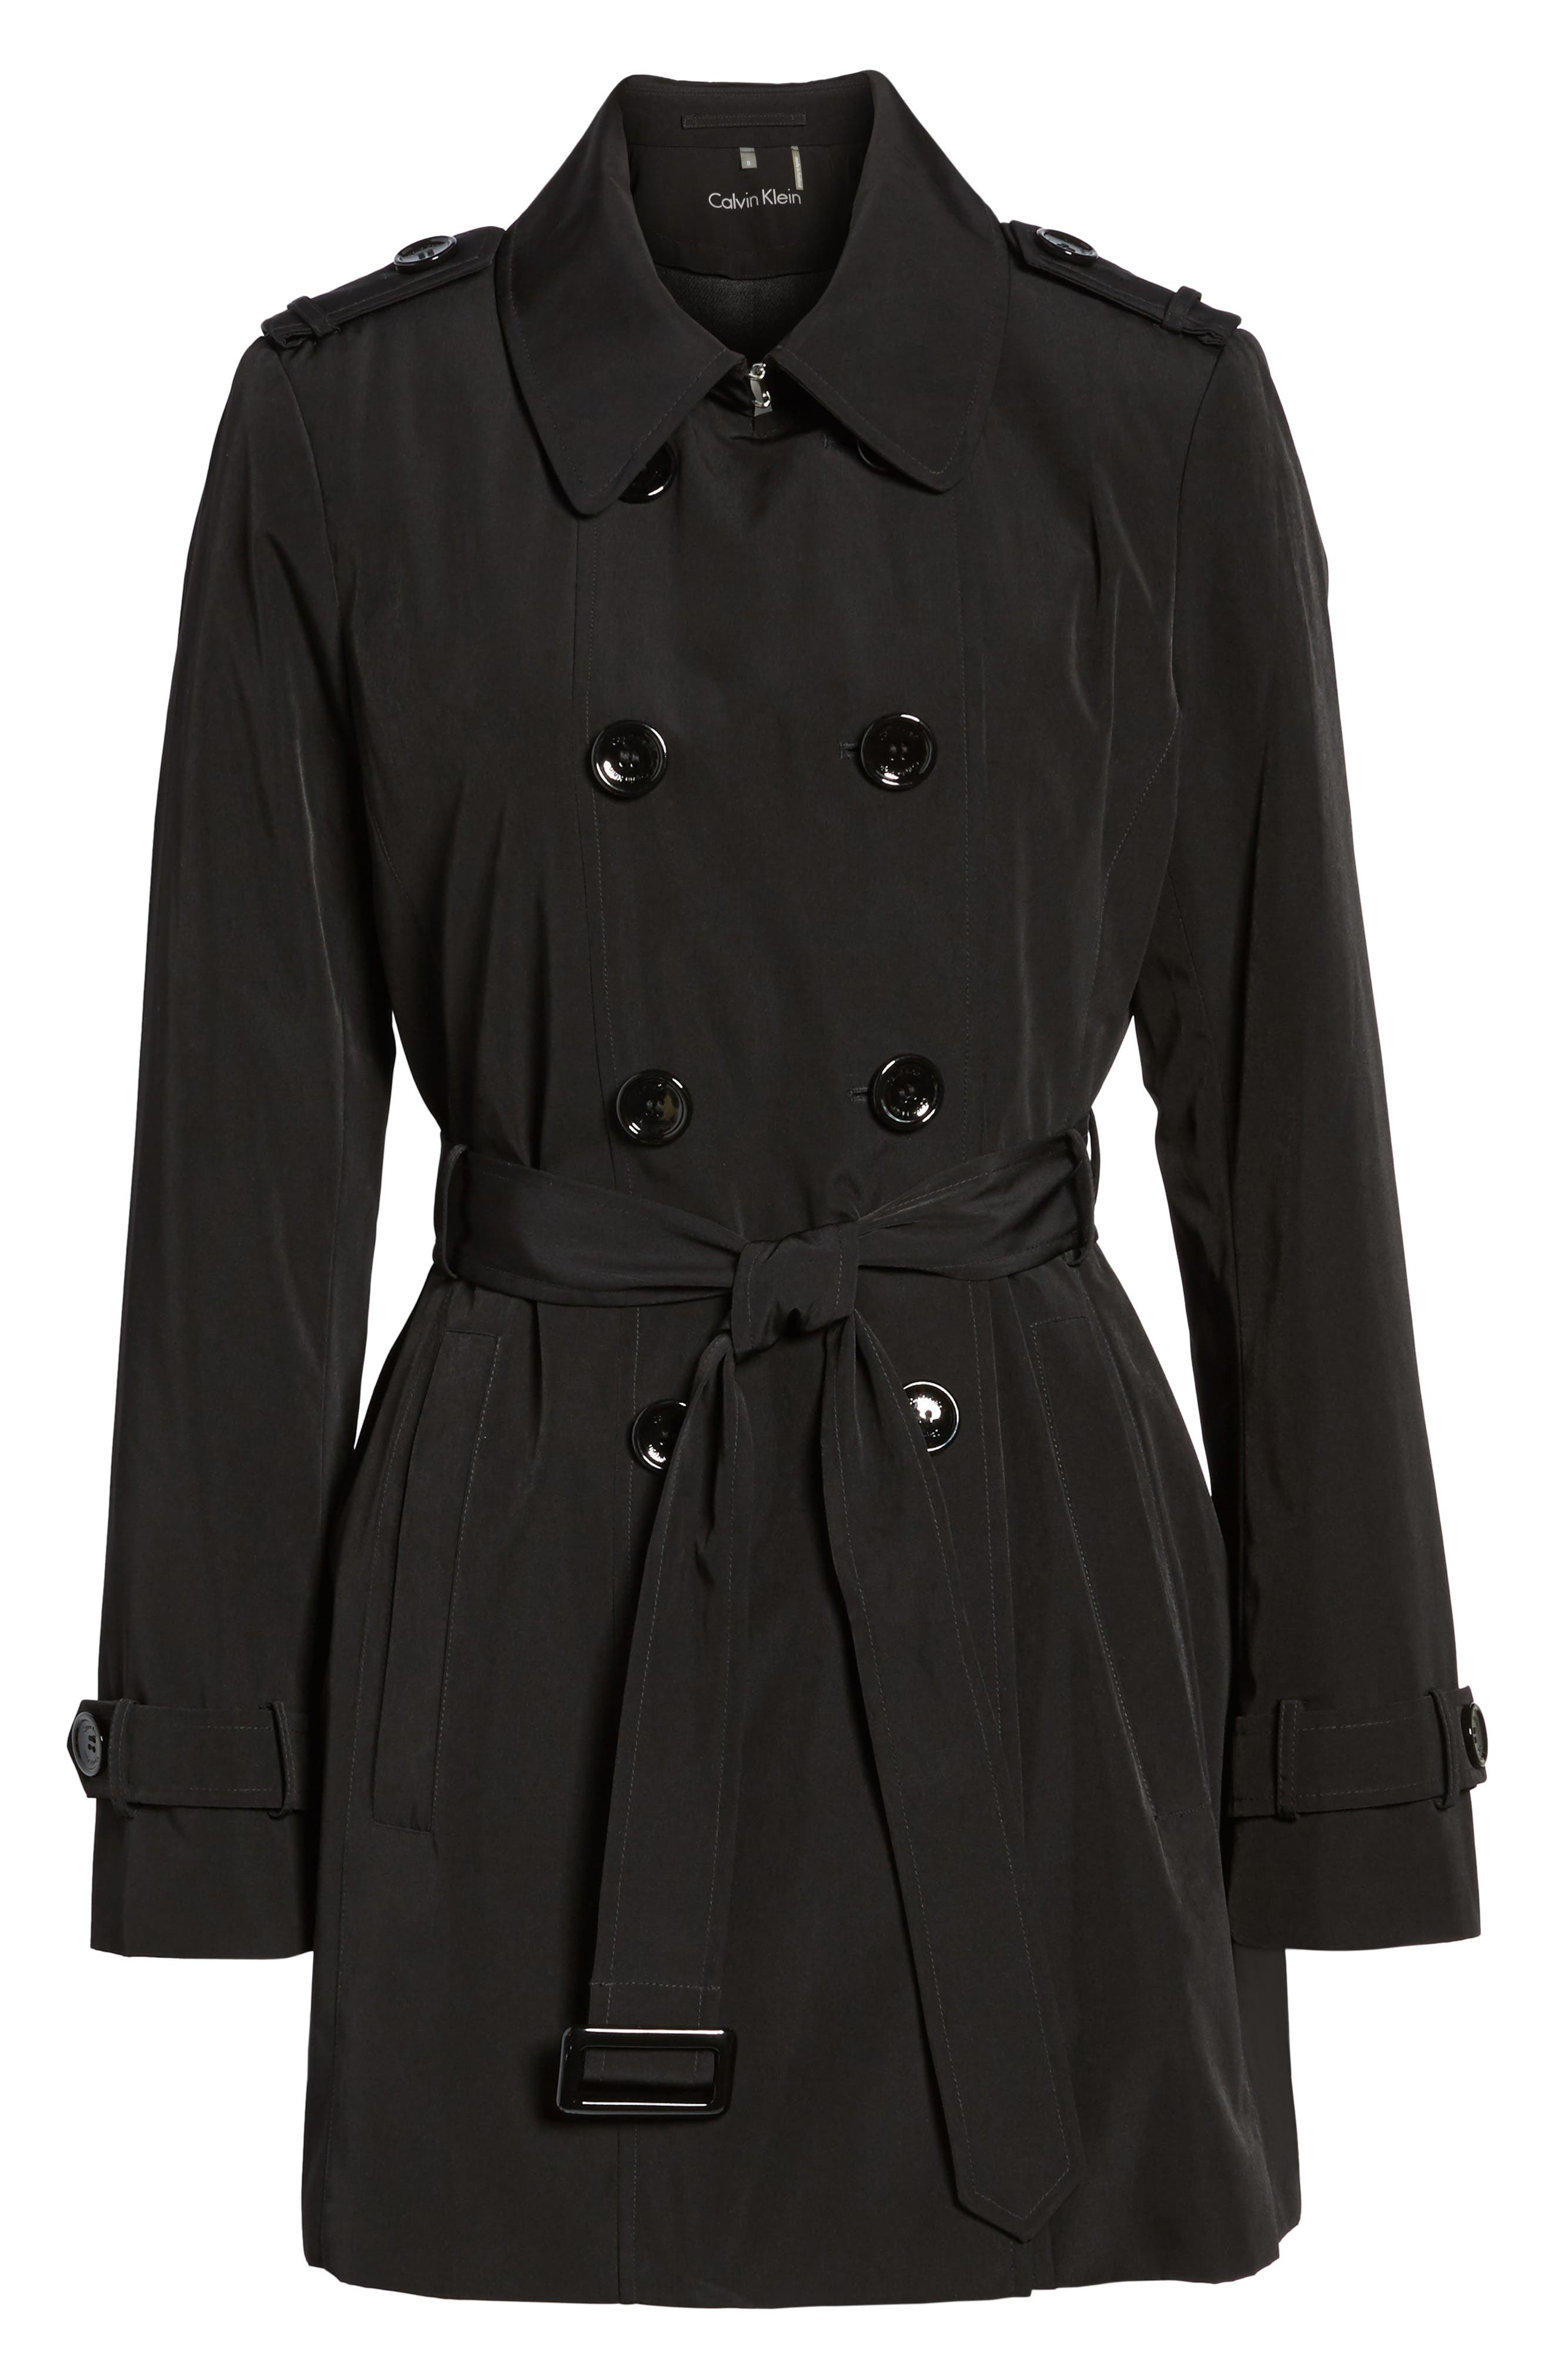 CALVIN KLEIN, Double Breasted Trench Coat, Main thumbnail 1, color, 001